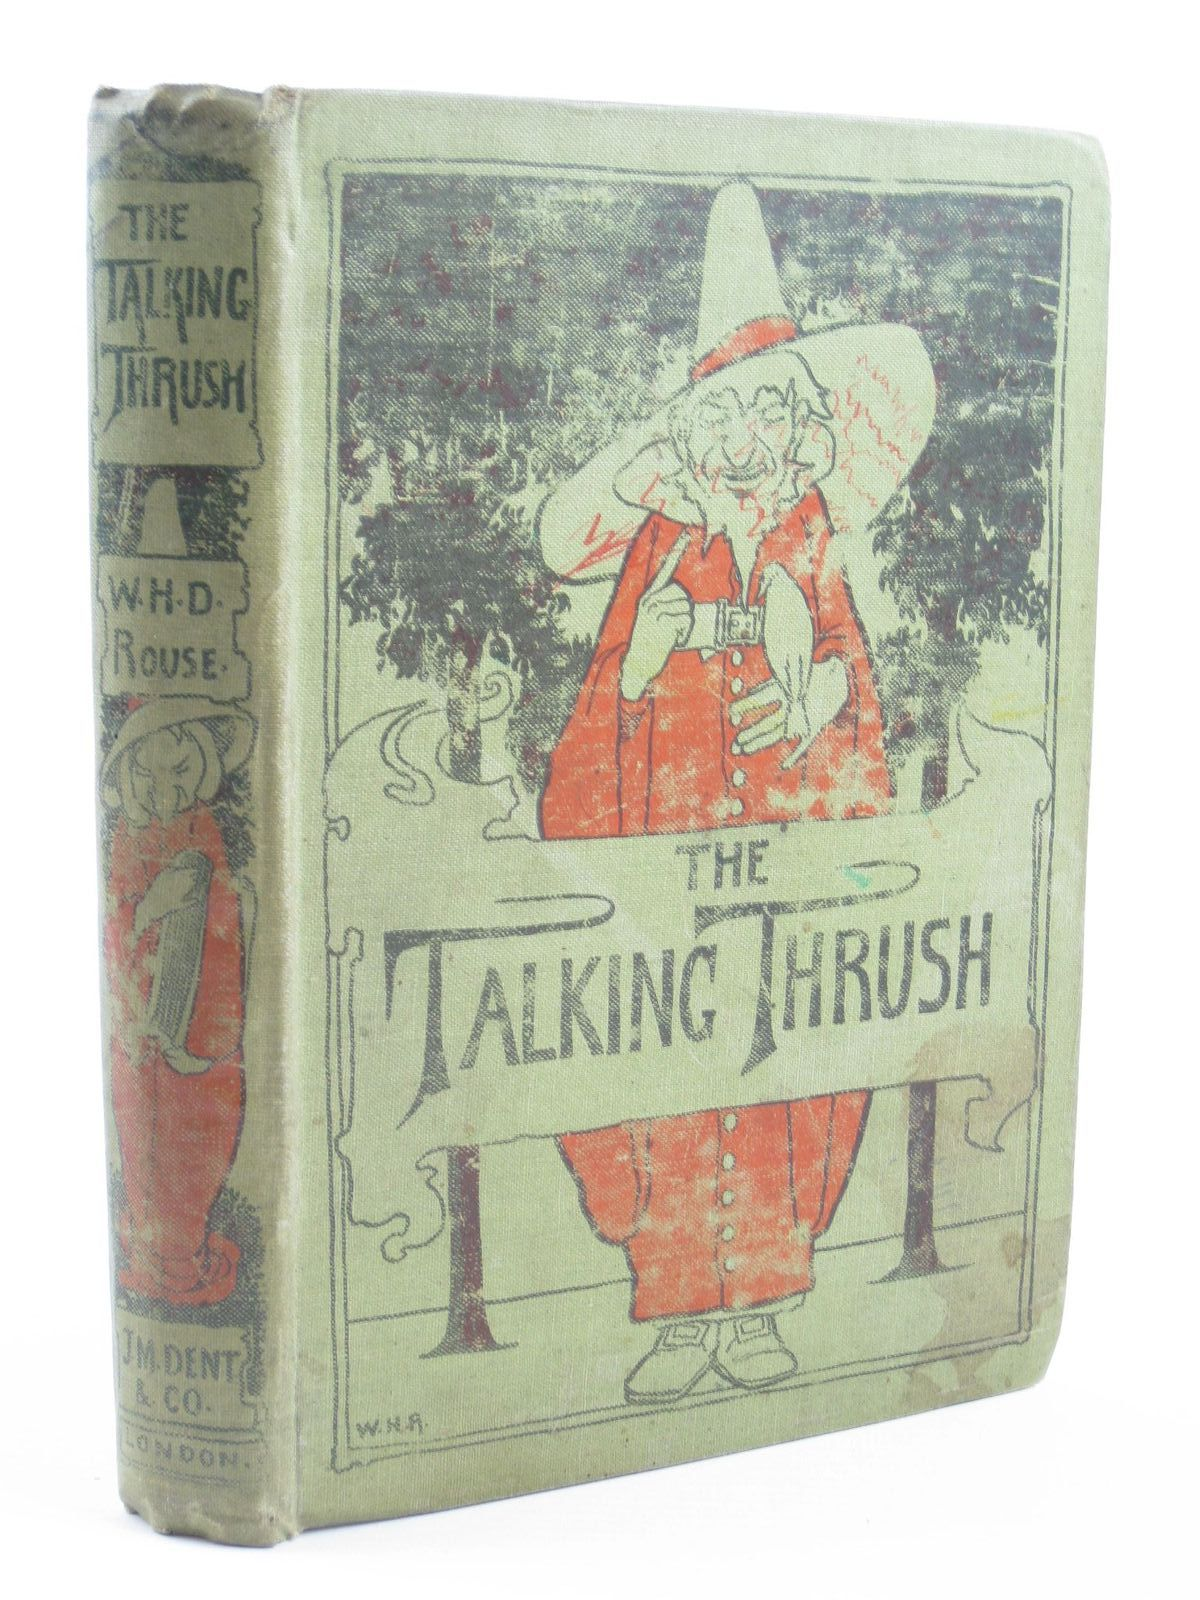 Photo of THE TALKING THRUSH AND OTHER TALES FROM INDIA written by Rouse, W.H.D. Crooke, W. illustrated by Robinson, W. Heath published by J.M. Dent & Co. (STOCK CODE: 1310971)  for sale by Stella & Rose's Books